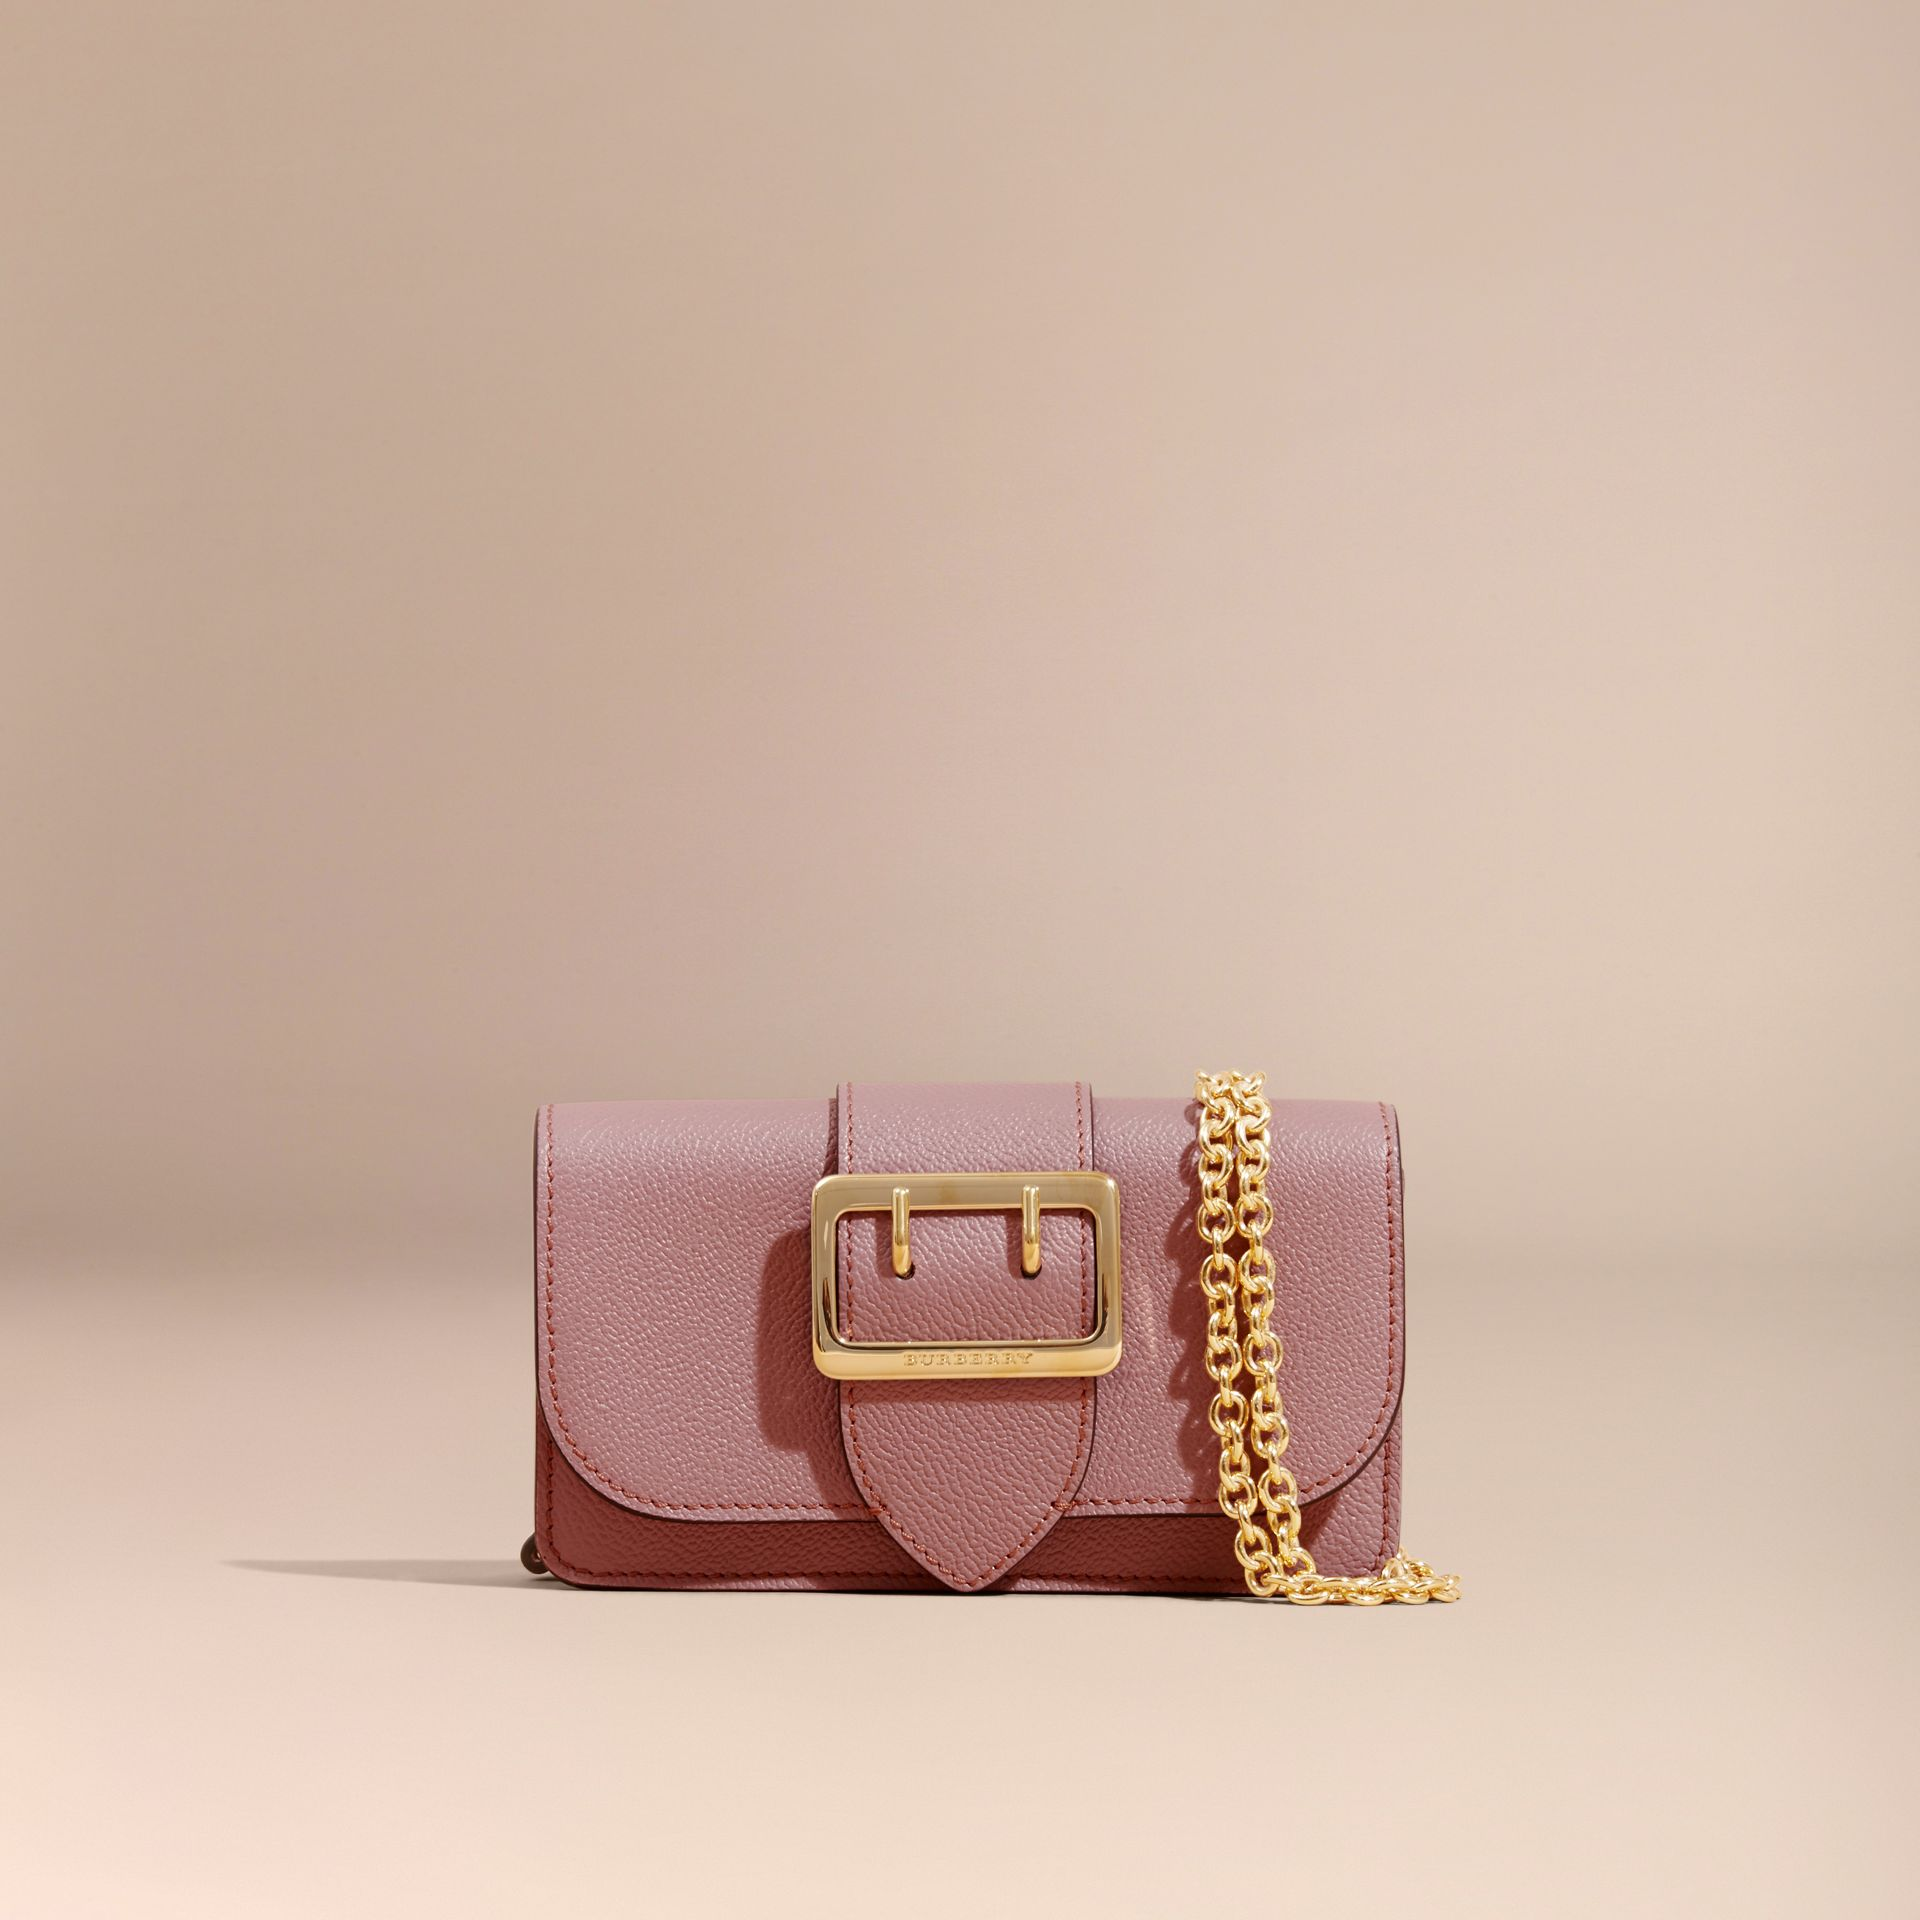 The Mini Buckle Bag in Grainy Leather in Dusty Pink - Women | Burberry Canada - gallery image 9